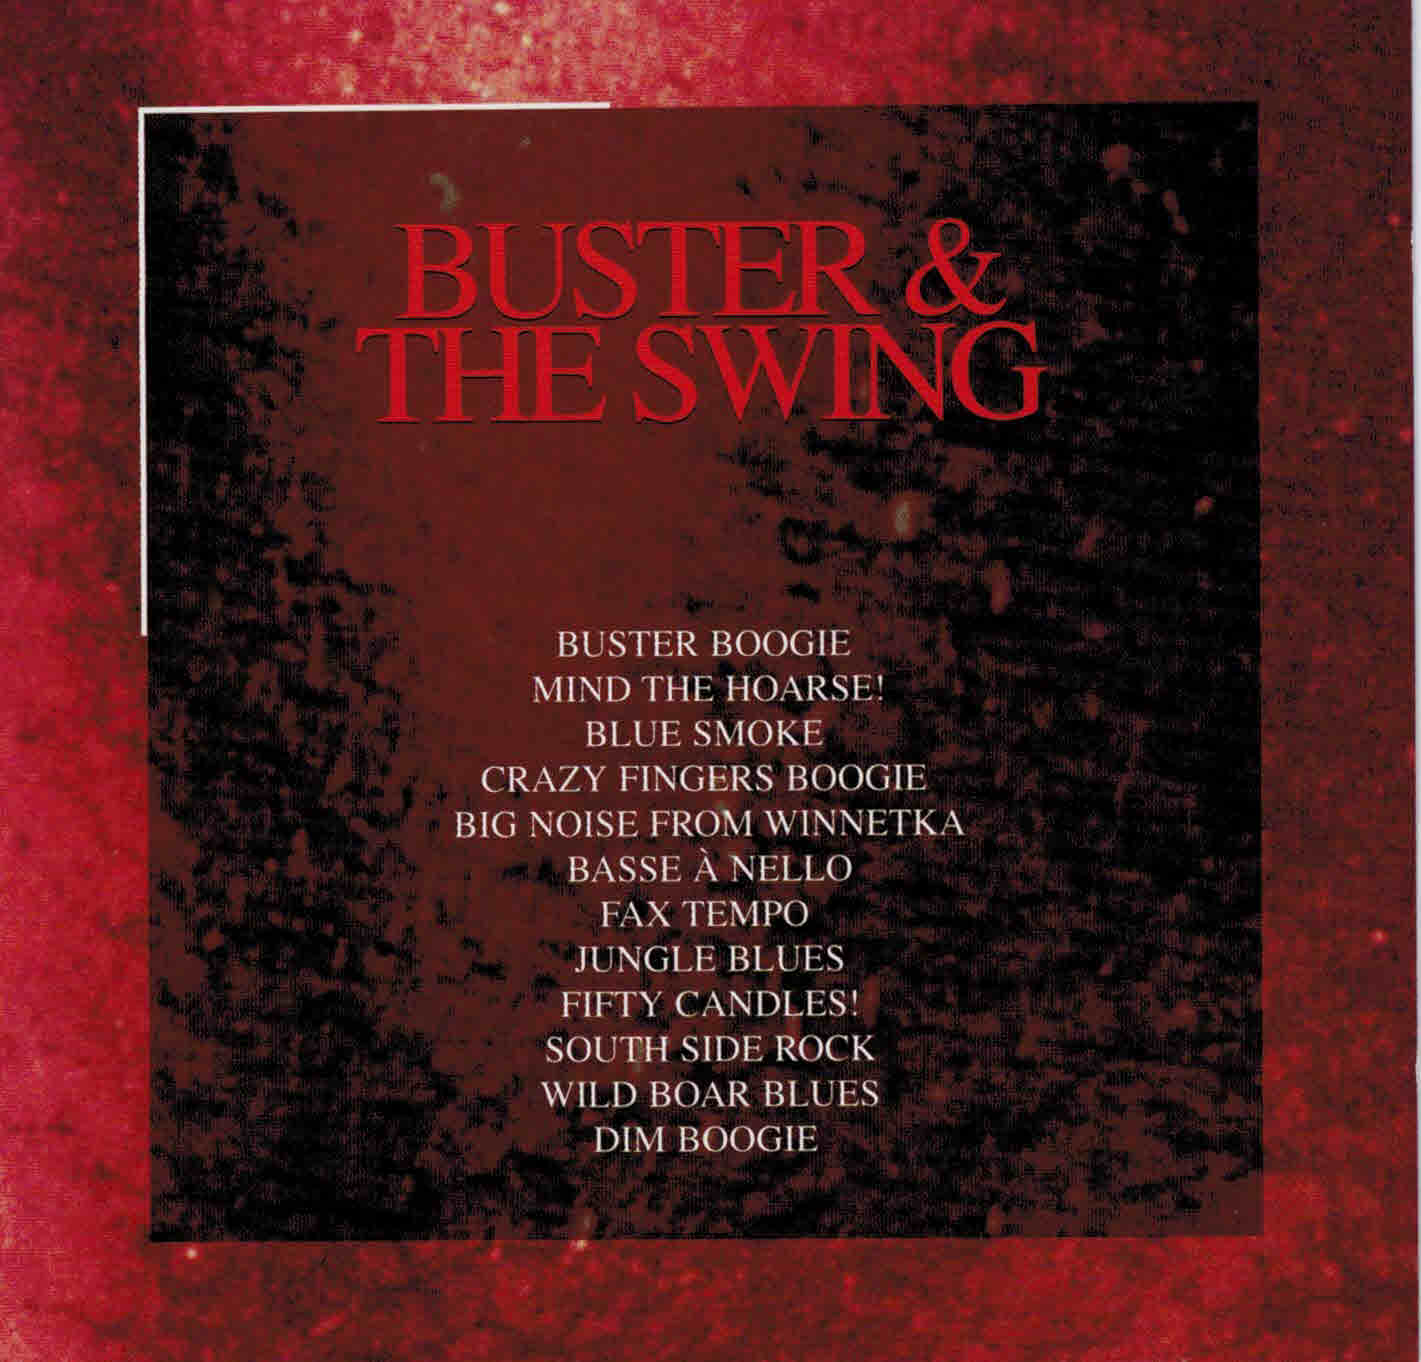 buster_swing